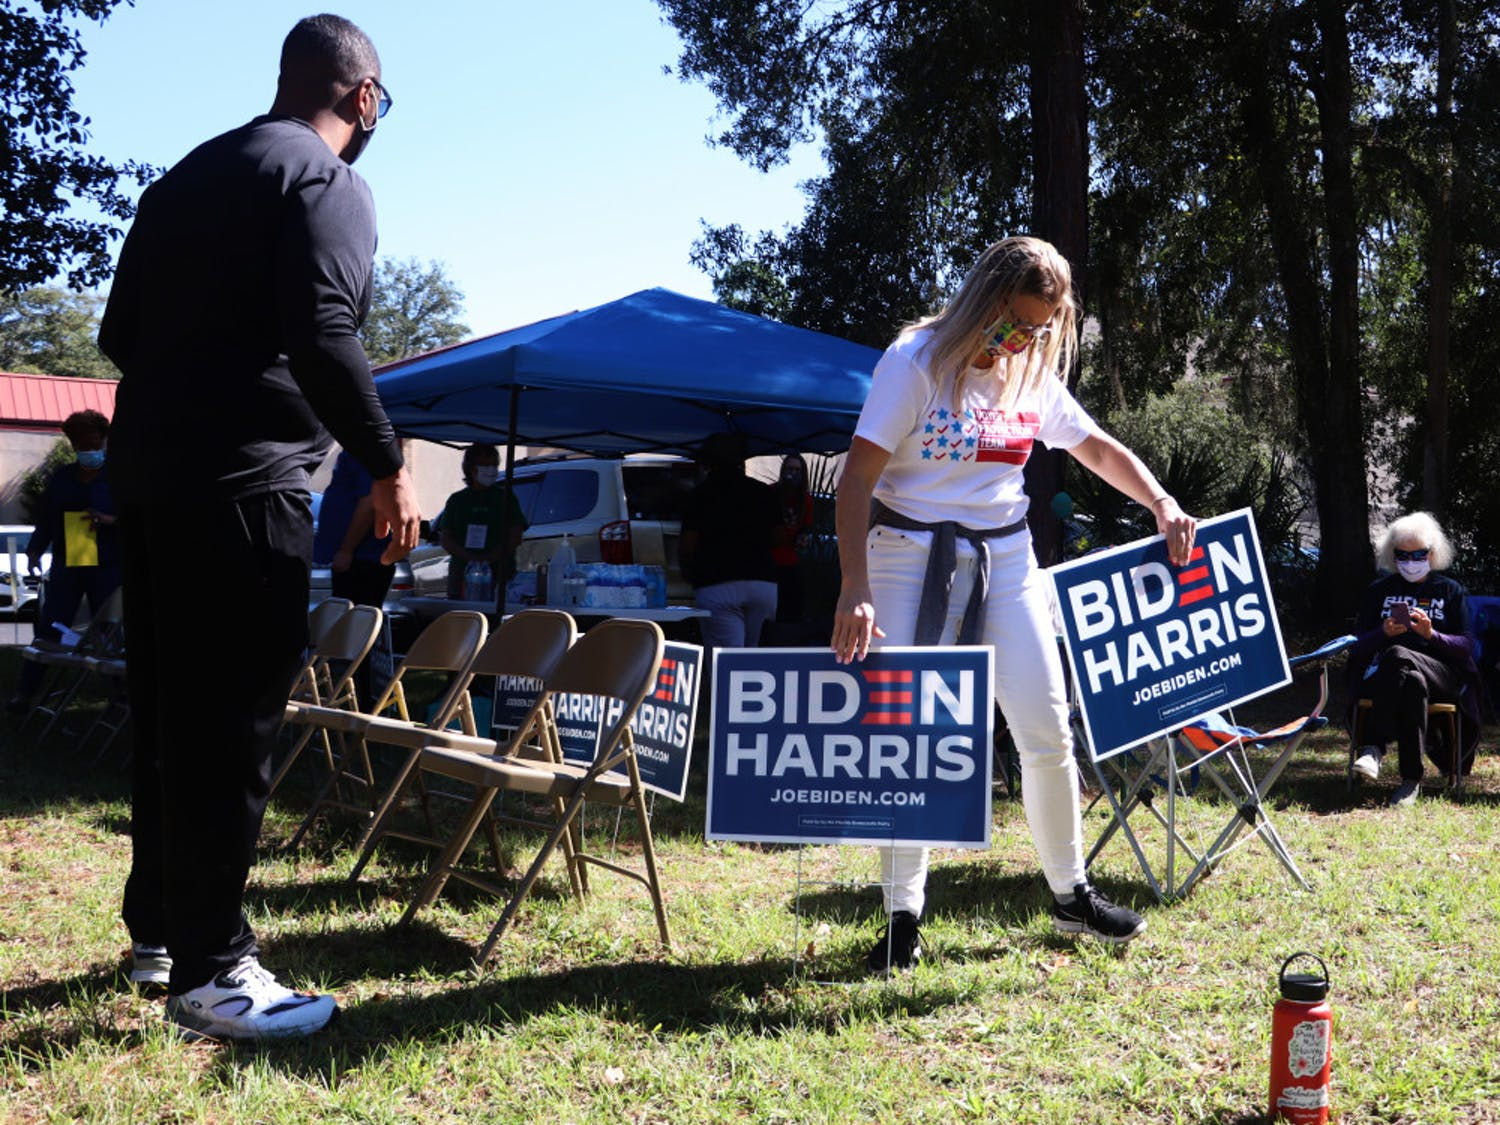 Cheree Padilla (right), a member of the Voter Protection Team, helps move the Biden campaign volunteers' signs on Tuesday, Nov. 3, 2020. The volunteers were told to move their signs and chairs to comply with the state statute that says no one can solicit voters within 150 feet of a polling location. (Lauren Witte/Alligator Staff)